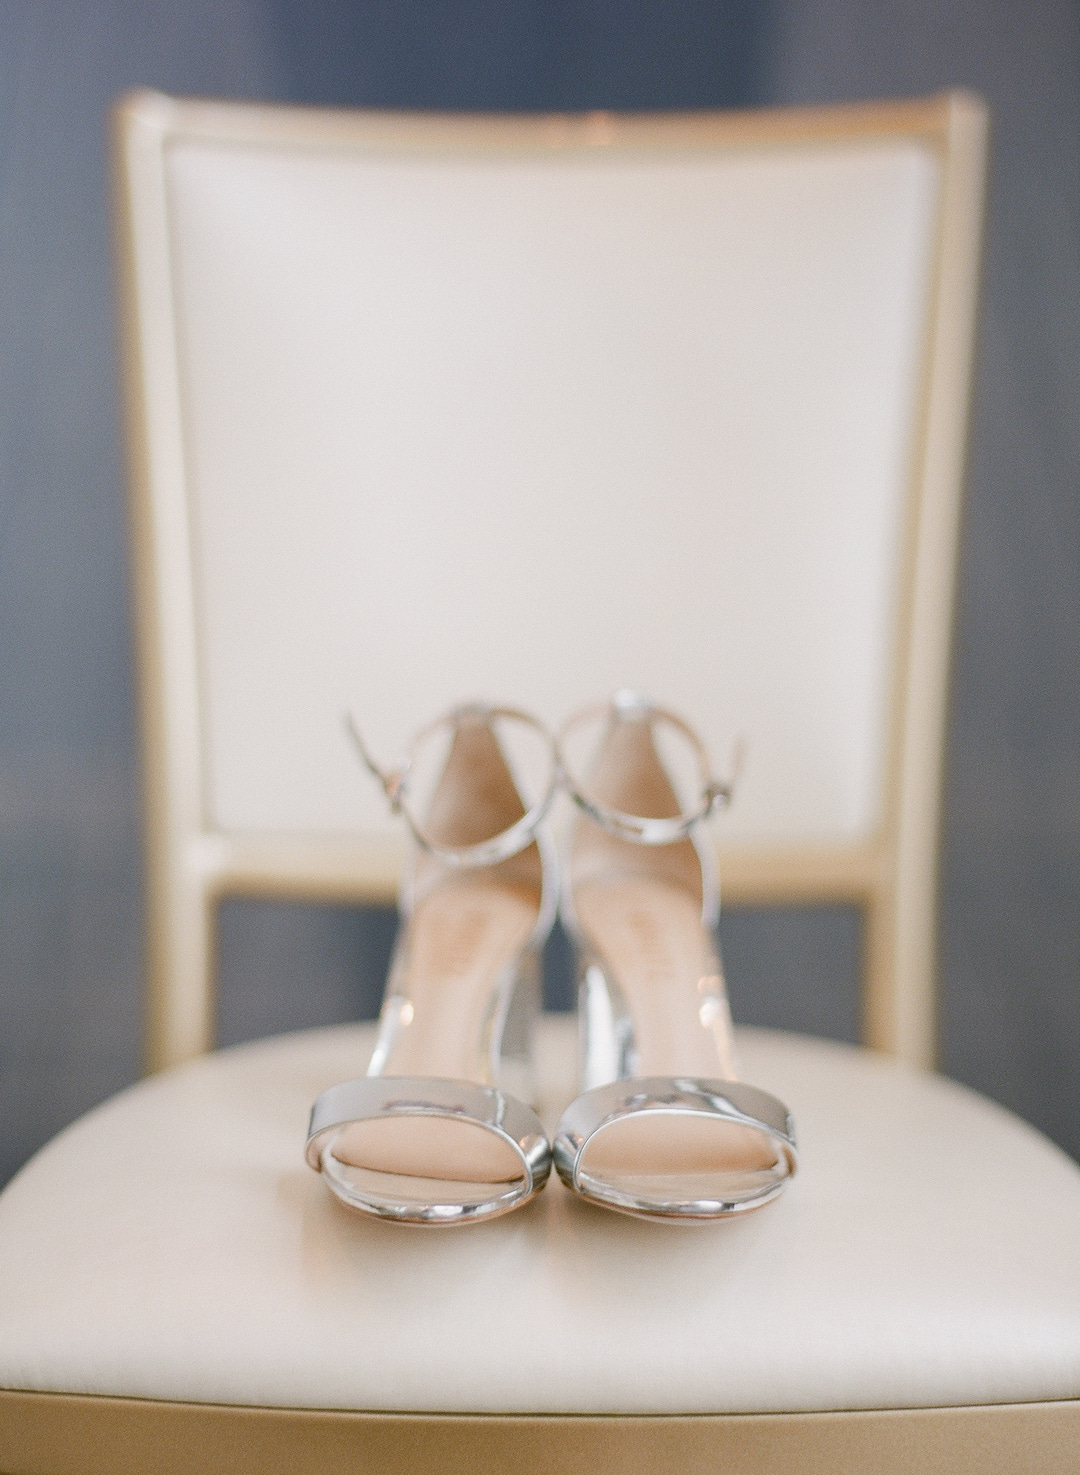 Bride's wedding shoes for Pittsburgh wedding at Hotel Monaco planned by Exhale Events. Find more modern wedding ideas at exhale-events.com!